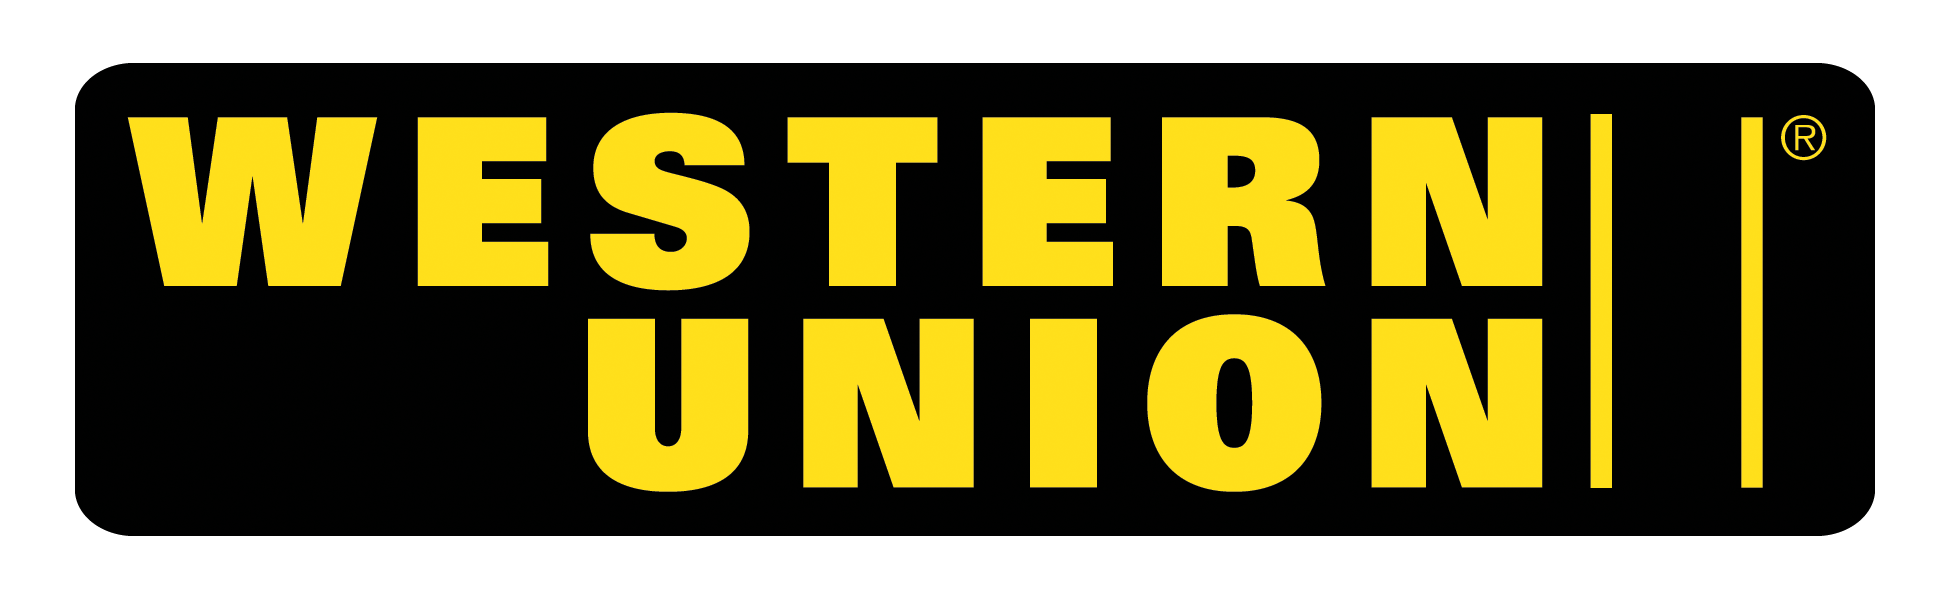 western union agent